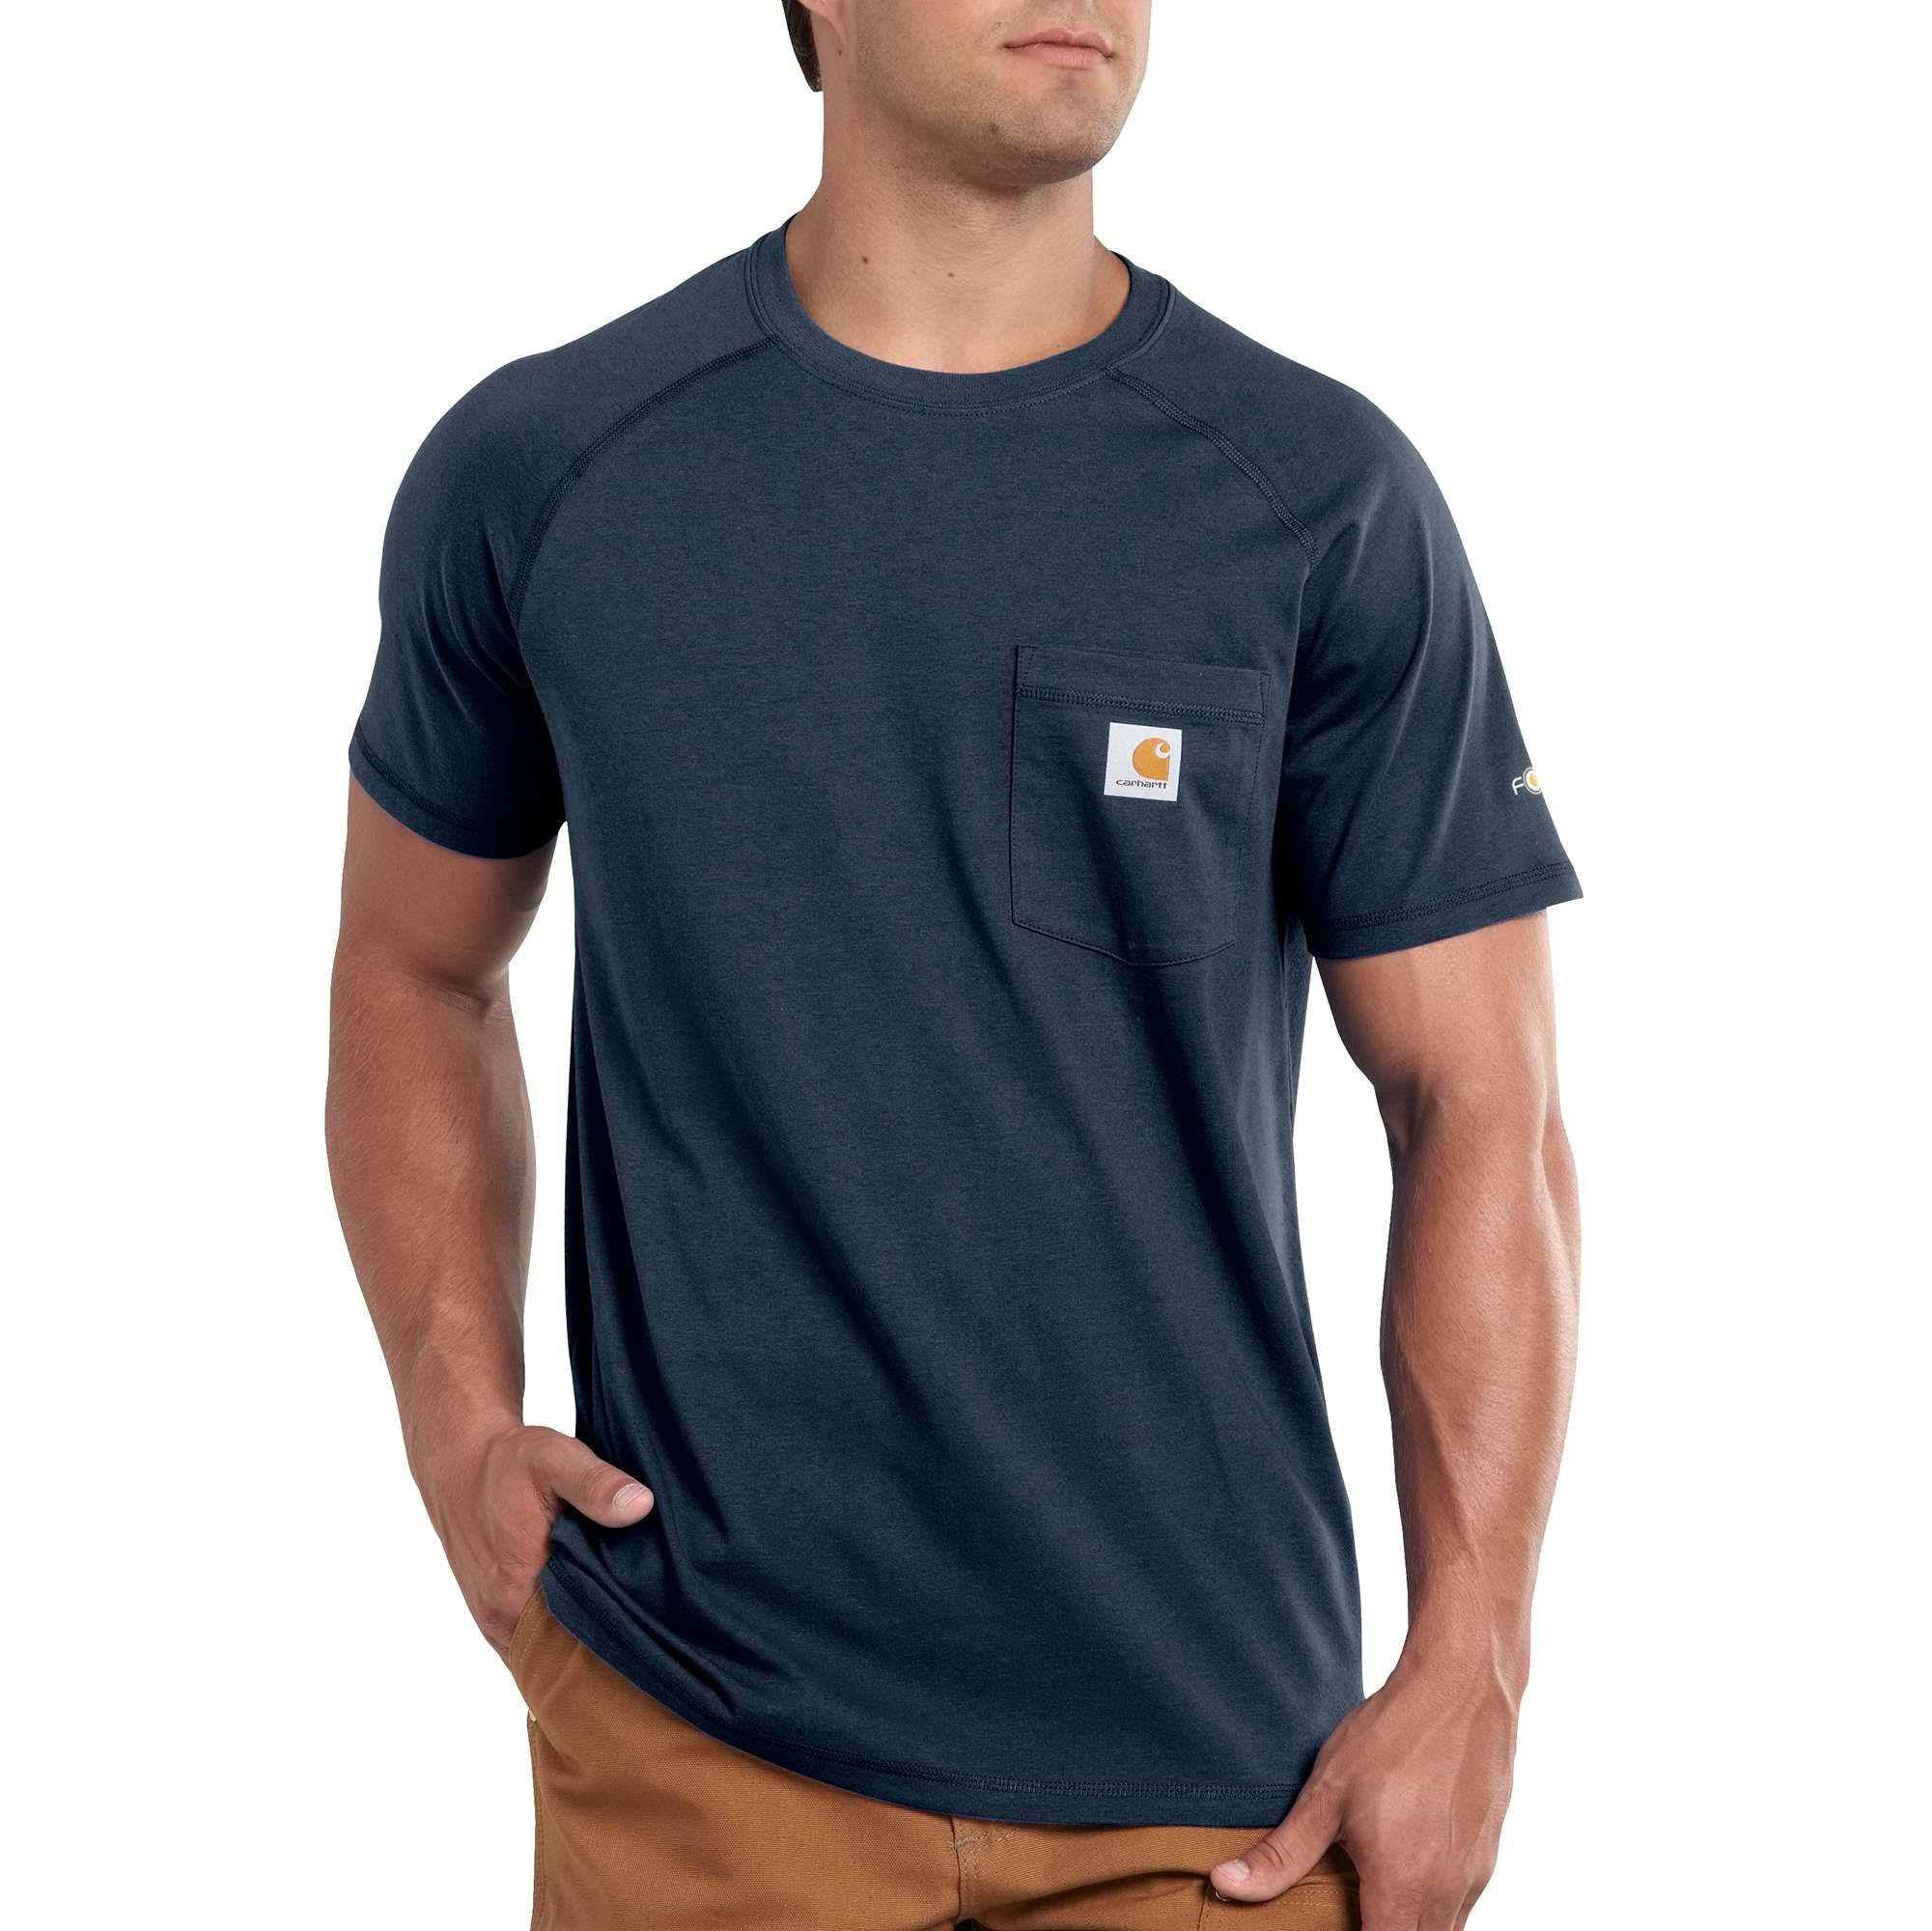 Carhartt Mens Force Cotton T Shirt - Navy, Large